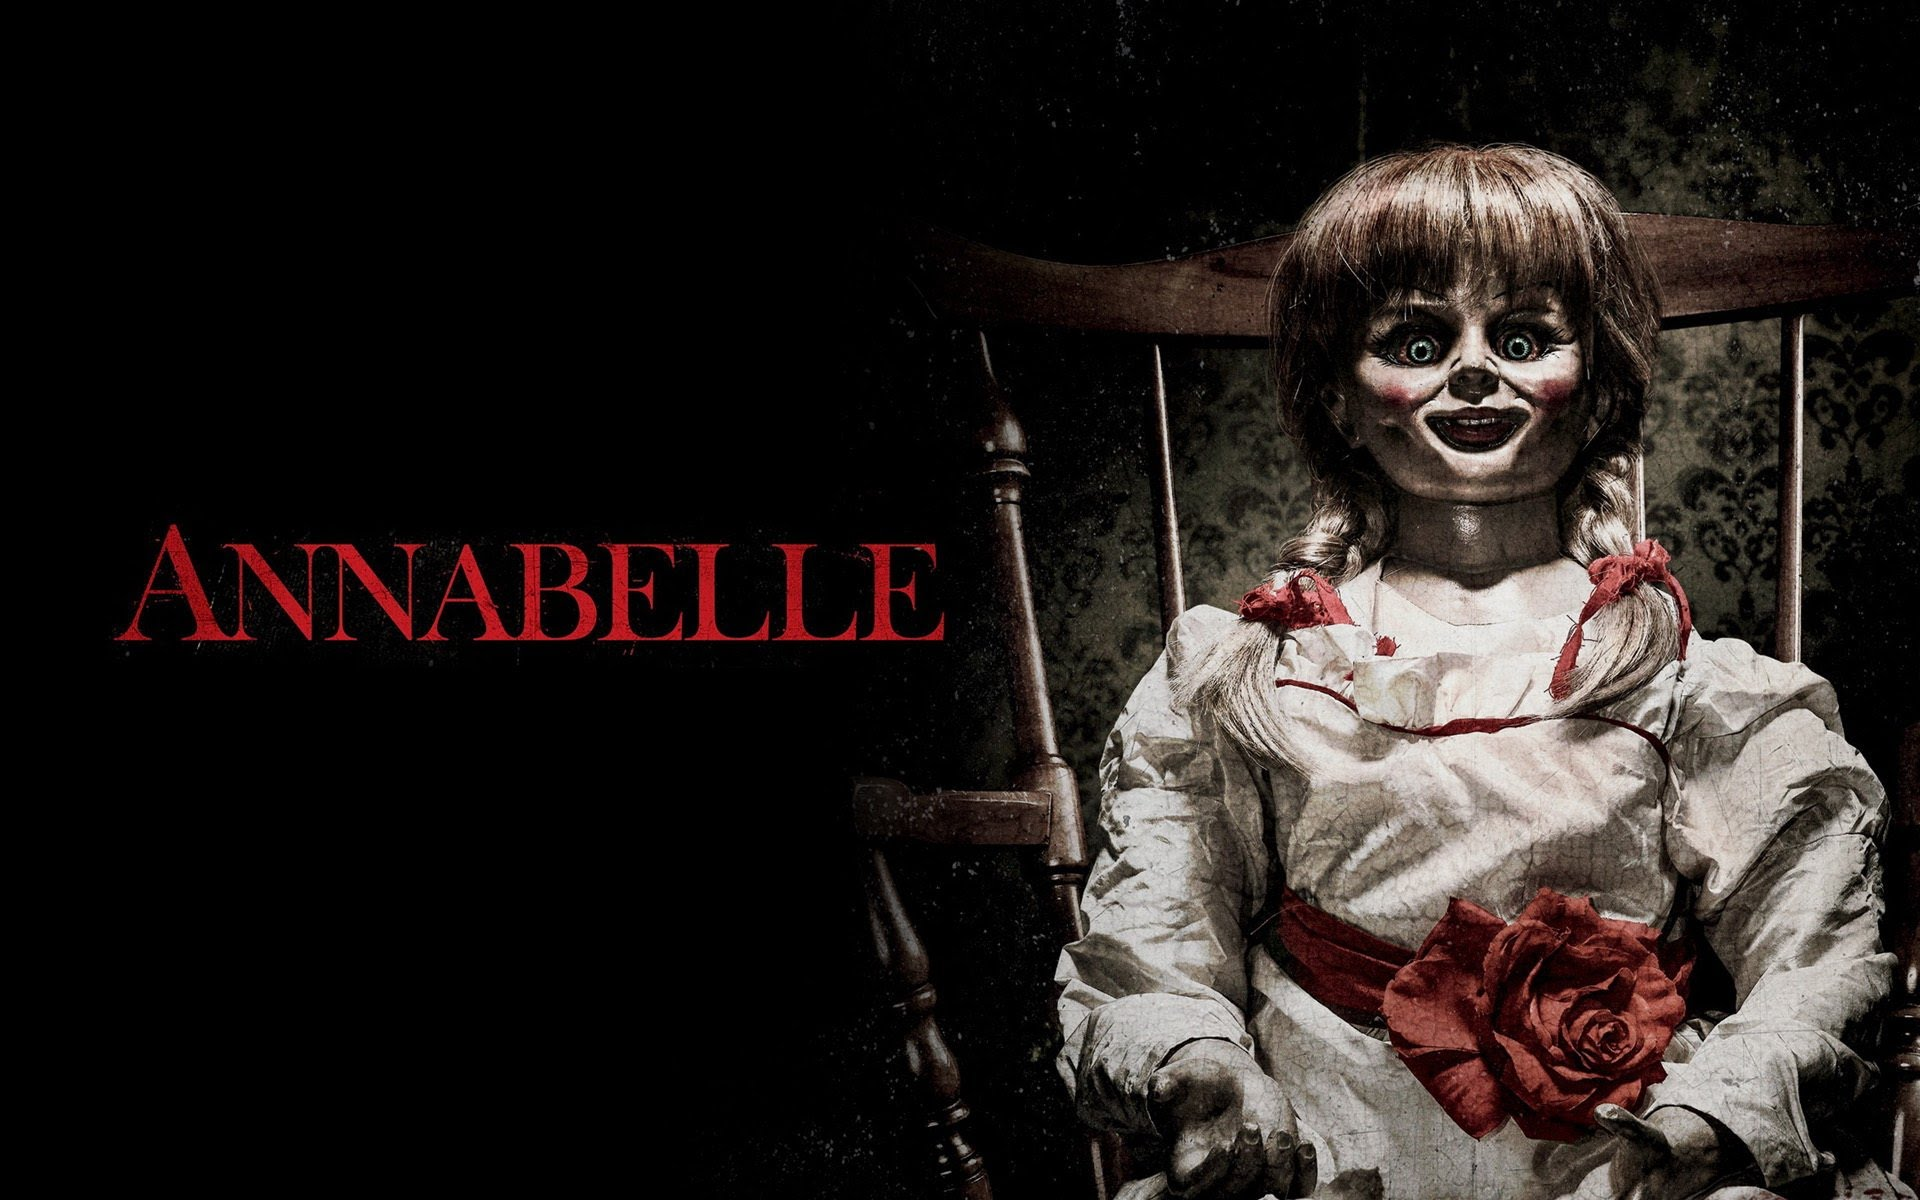 Annabelle 2014 movie review